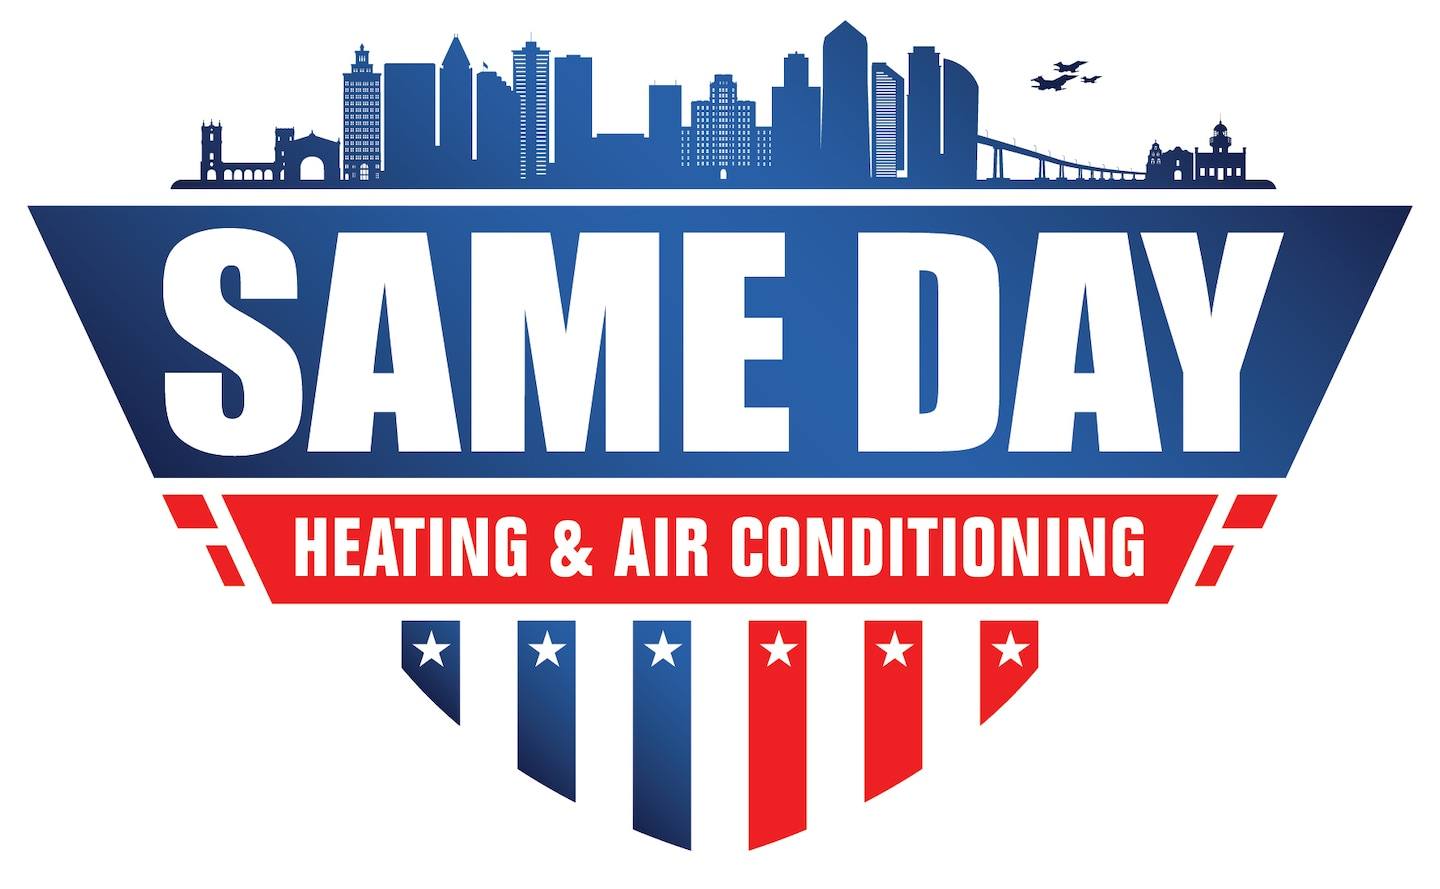 Same Day Heating & Air Conditioning